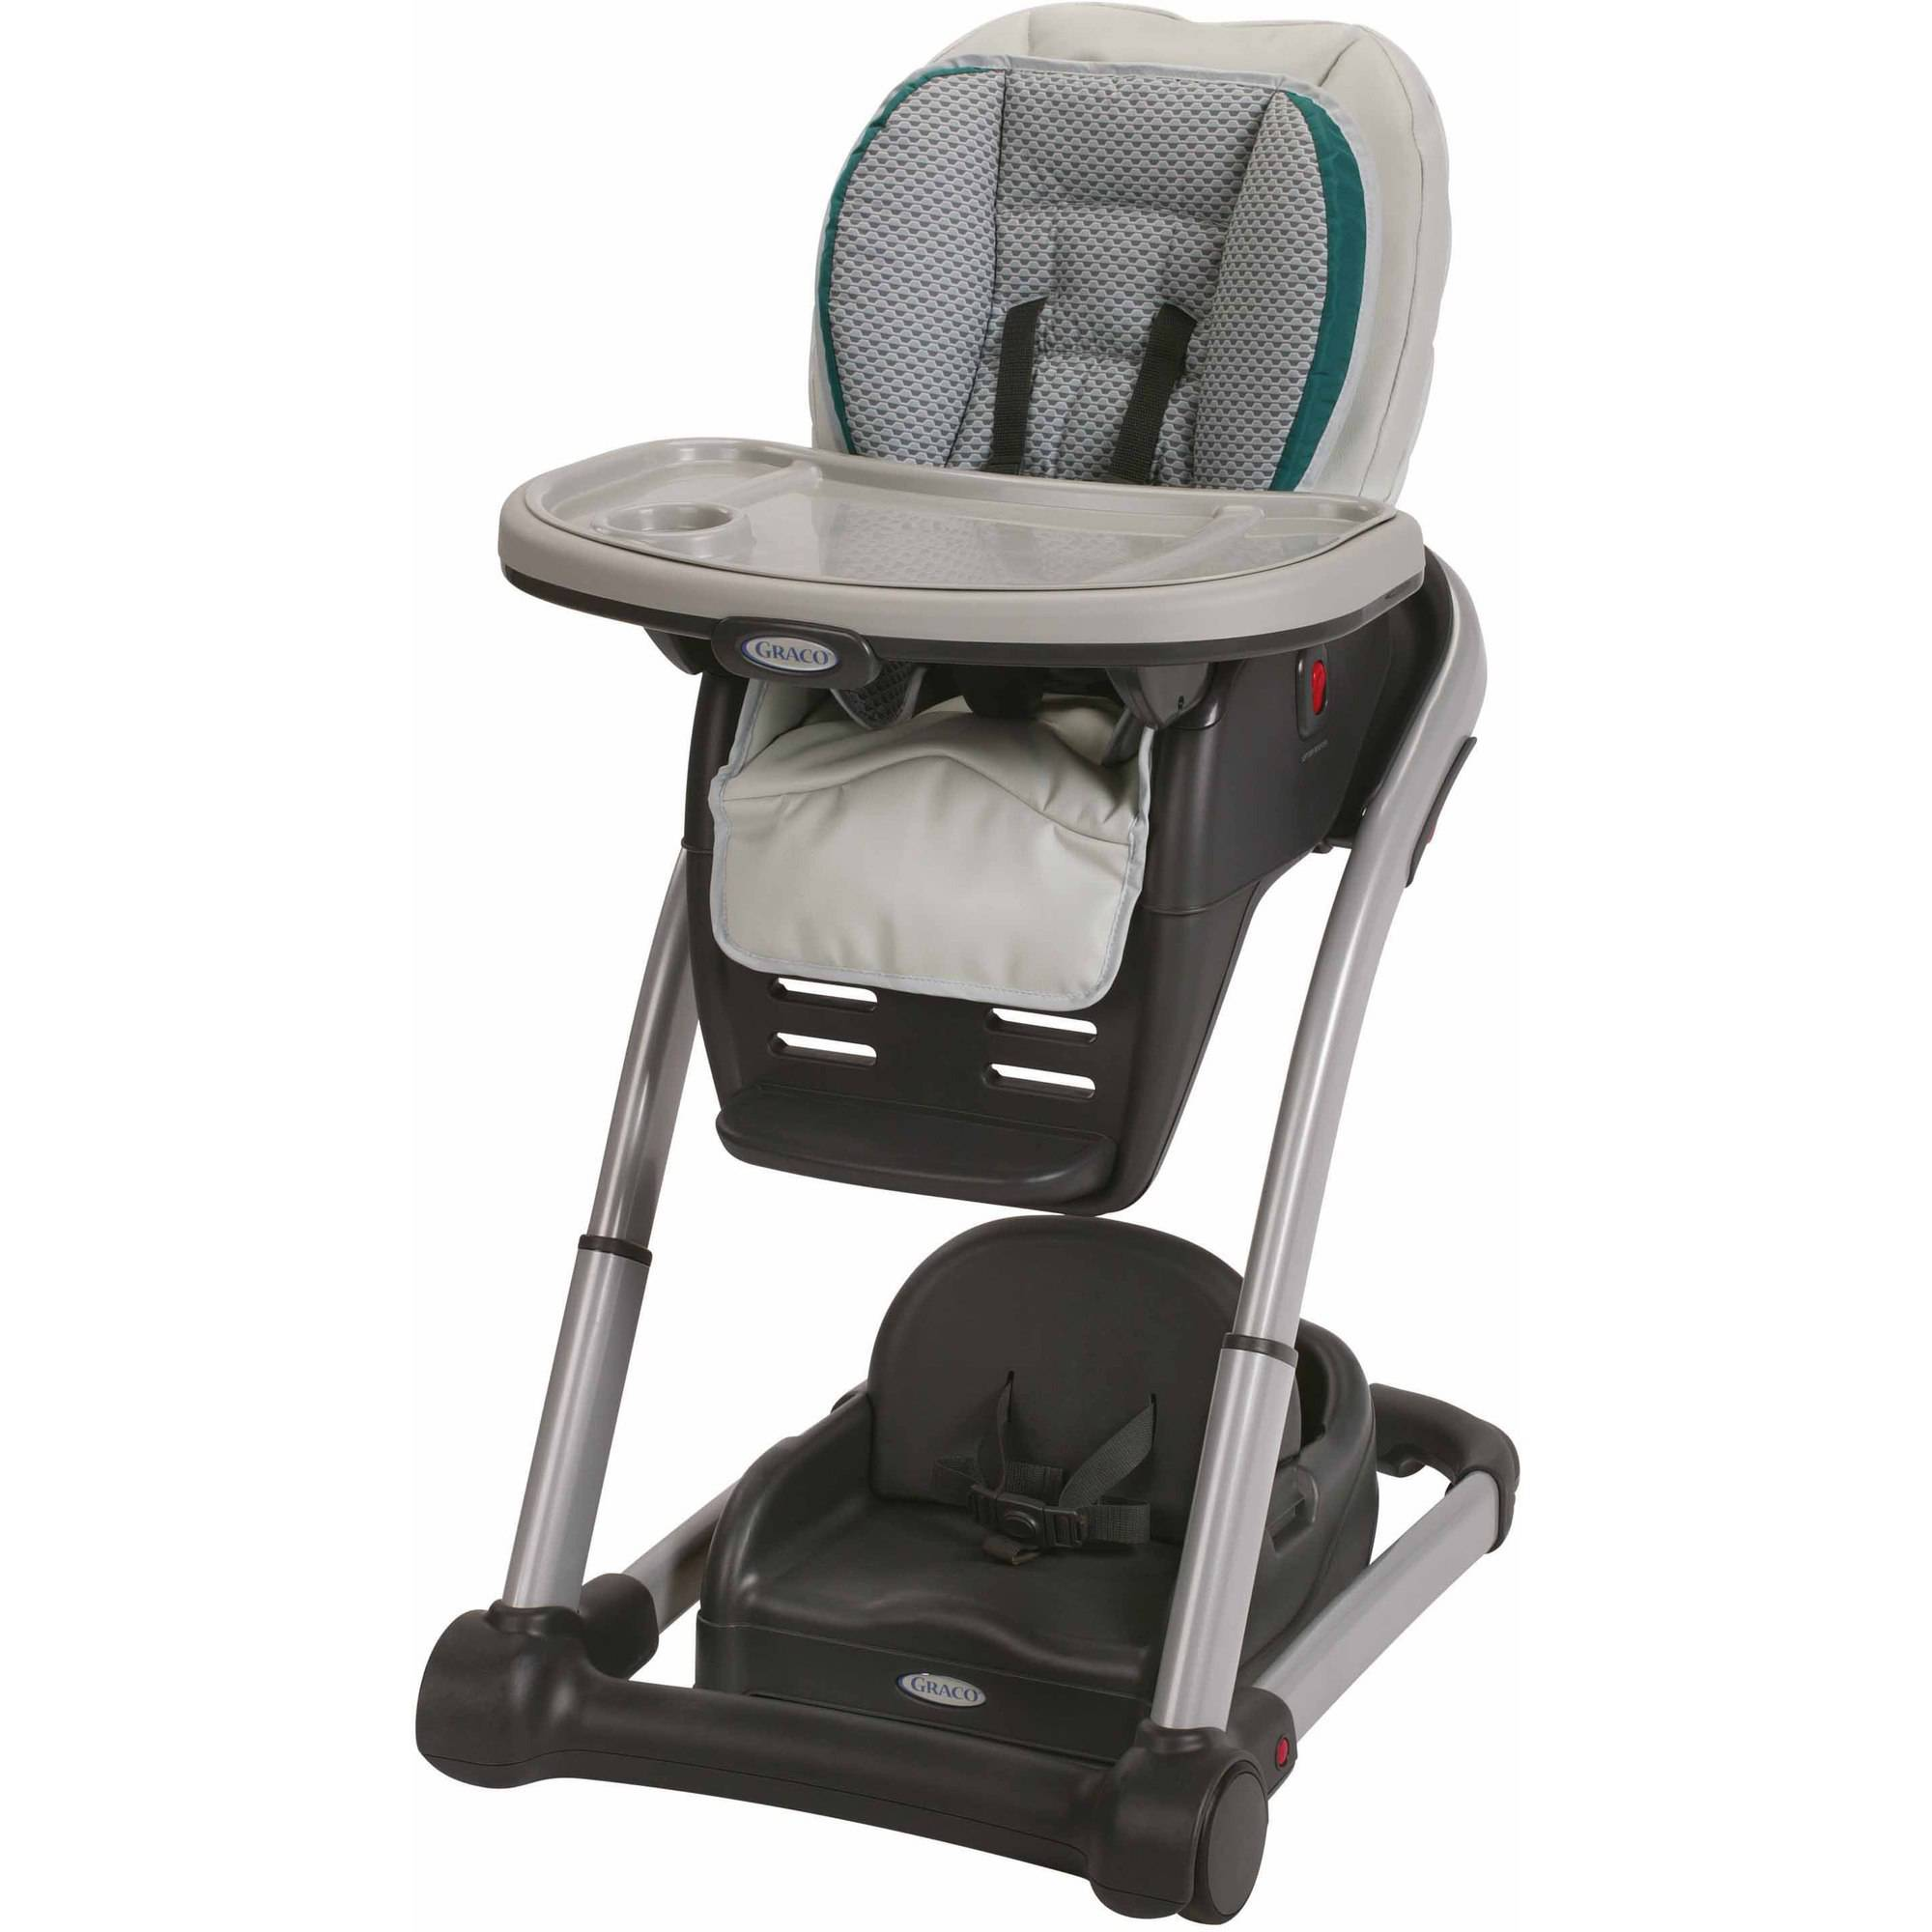 Graco Blossom 4-in-1 Seating System Convertible High Chair, Sapphire